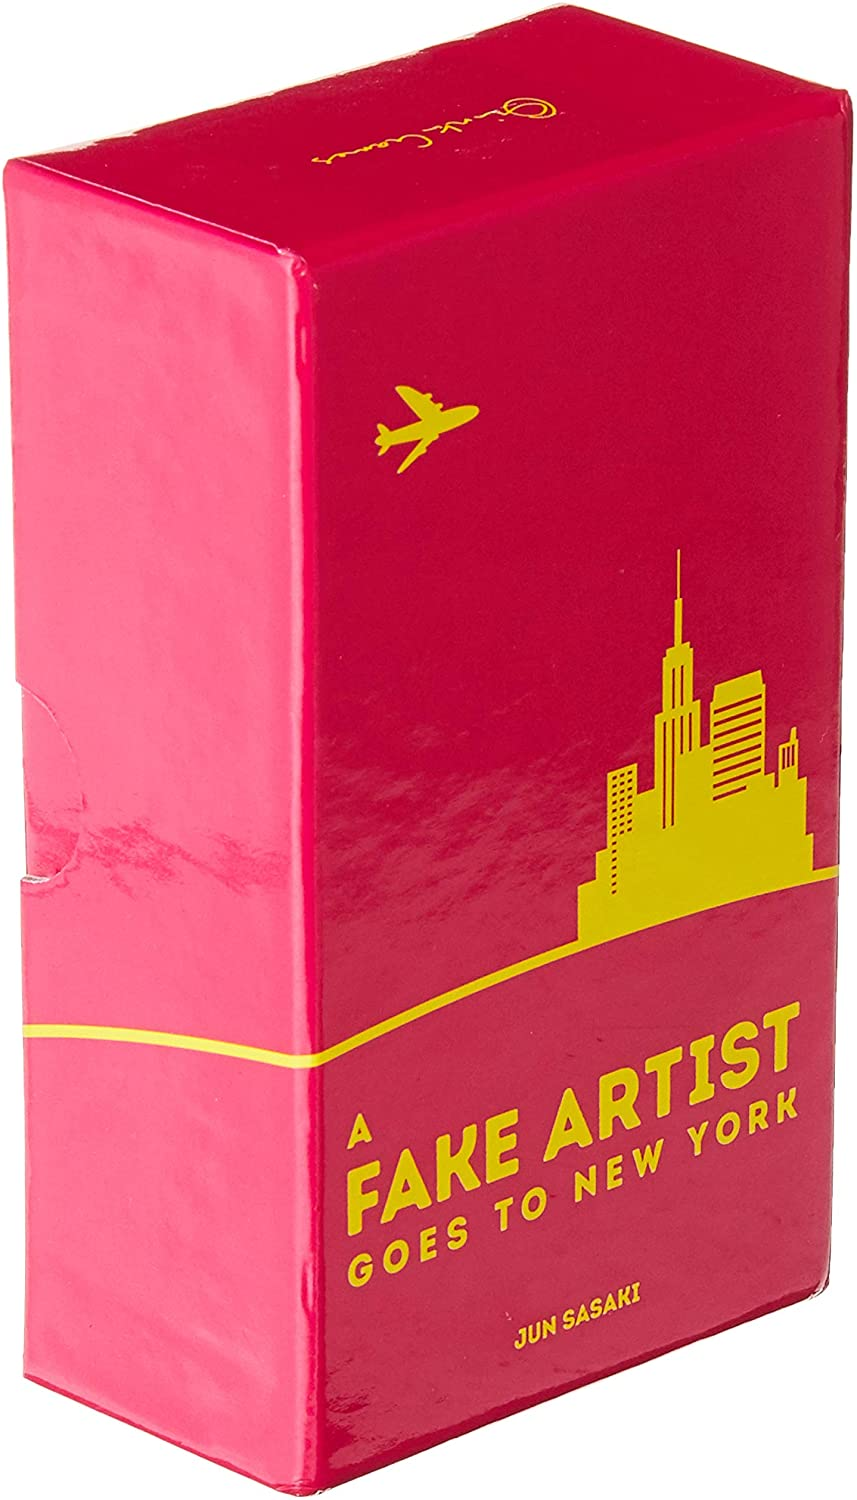 Most Unique: A Fake Artist Goes to New York Board Game